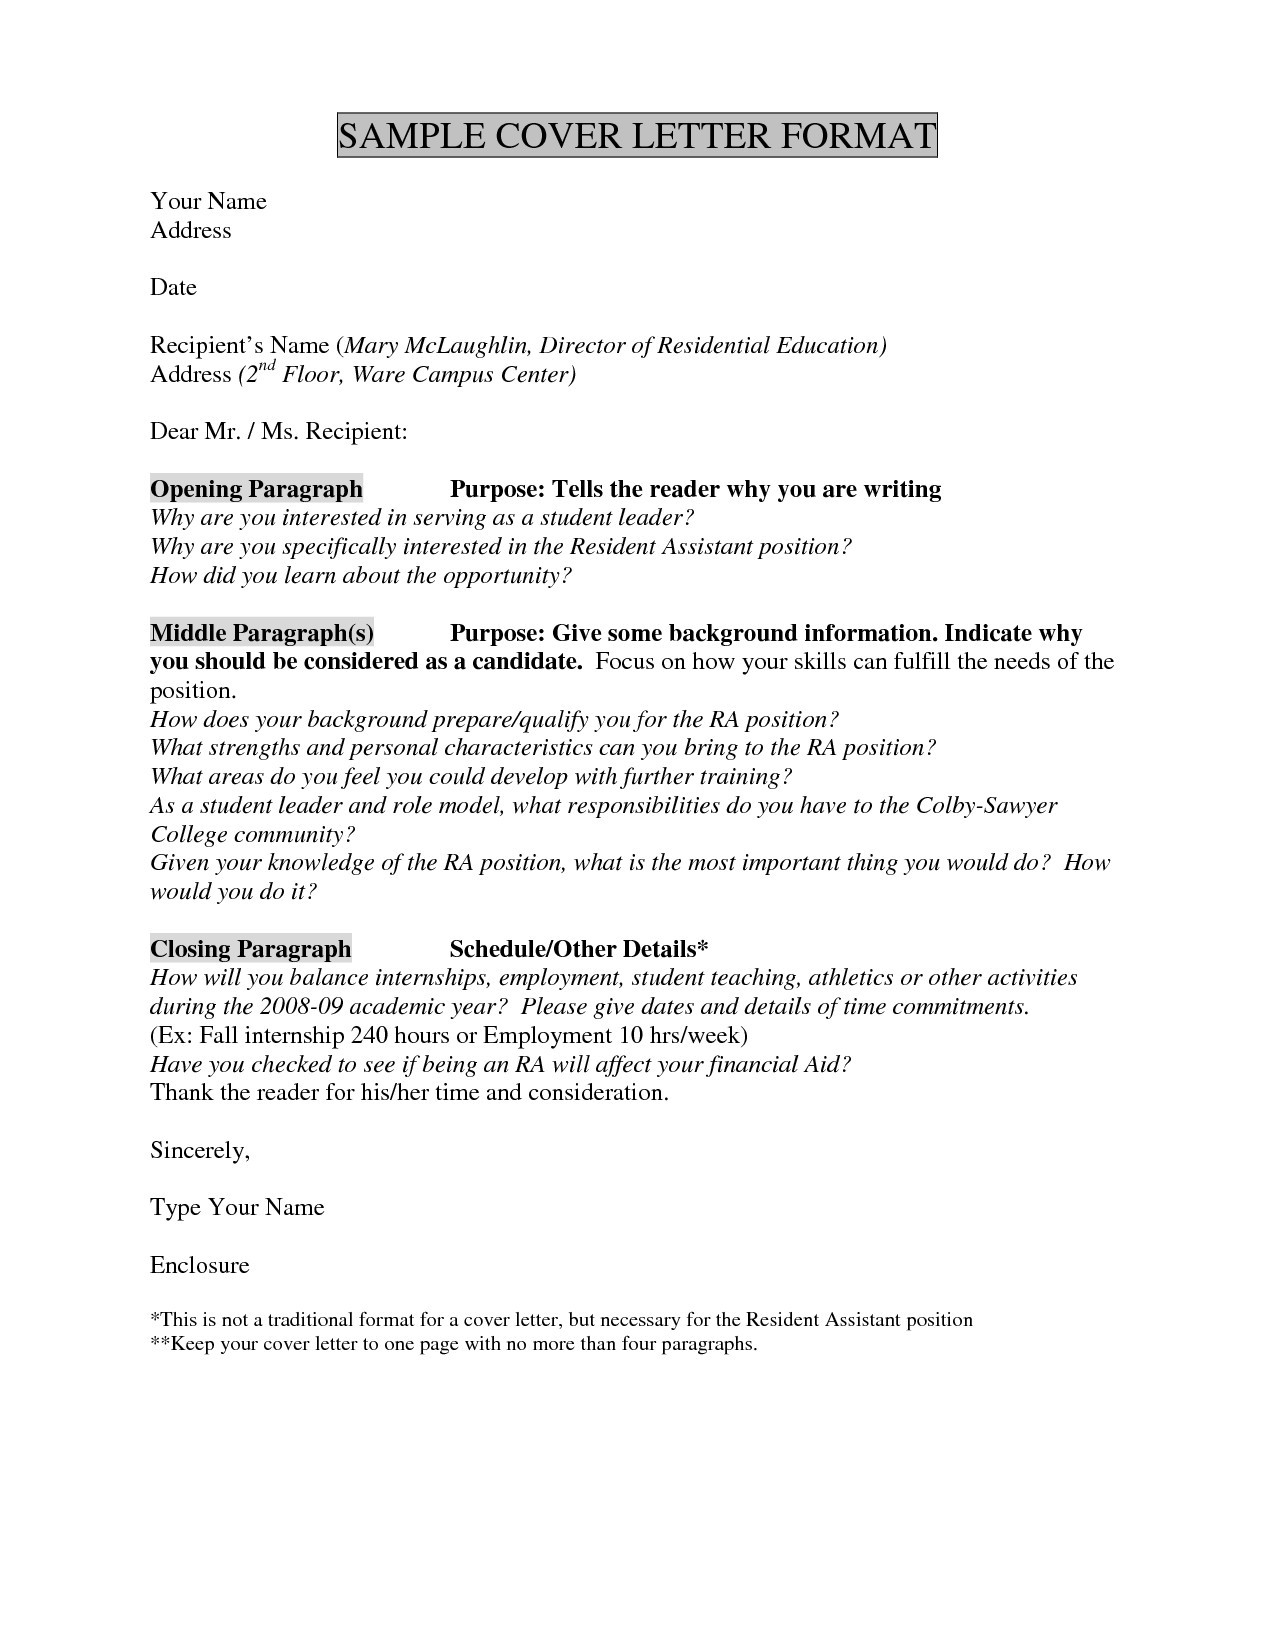 Confirmation Letter Template - How to Write Confirmation Letter for Job Refrence Unique if I Apply